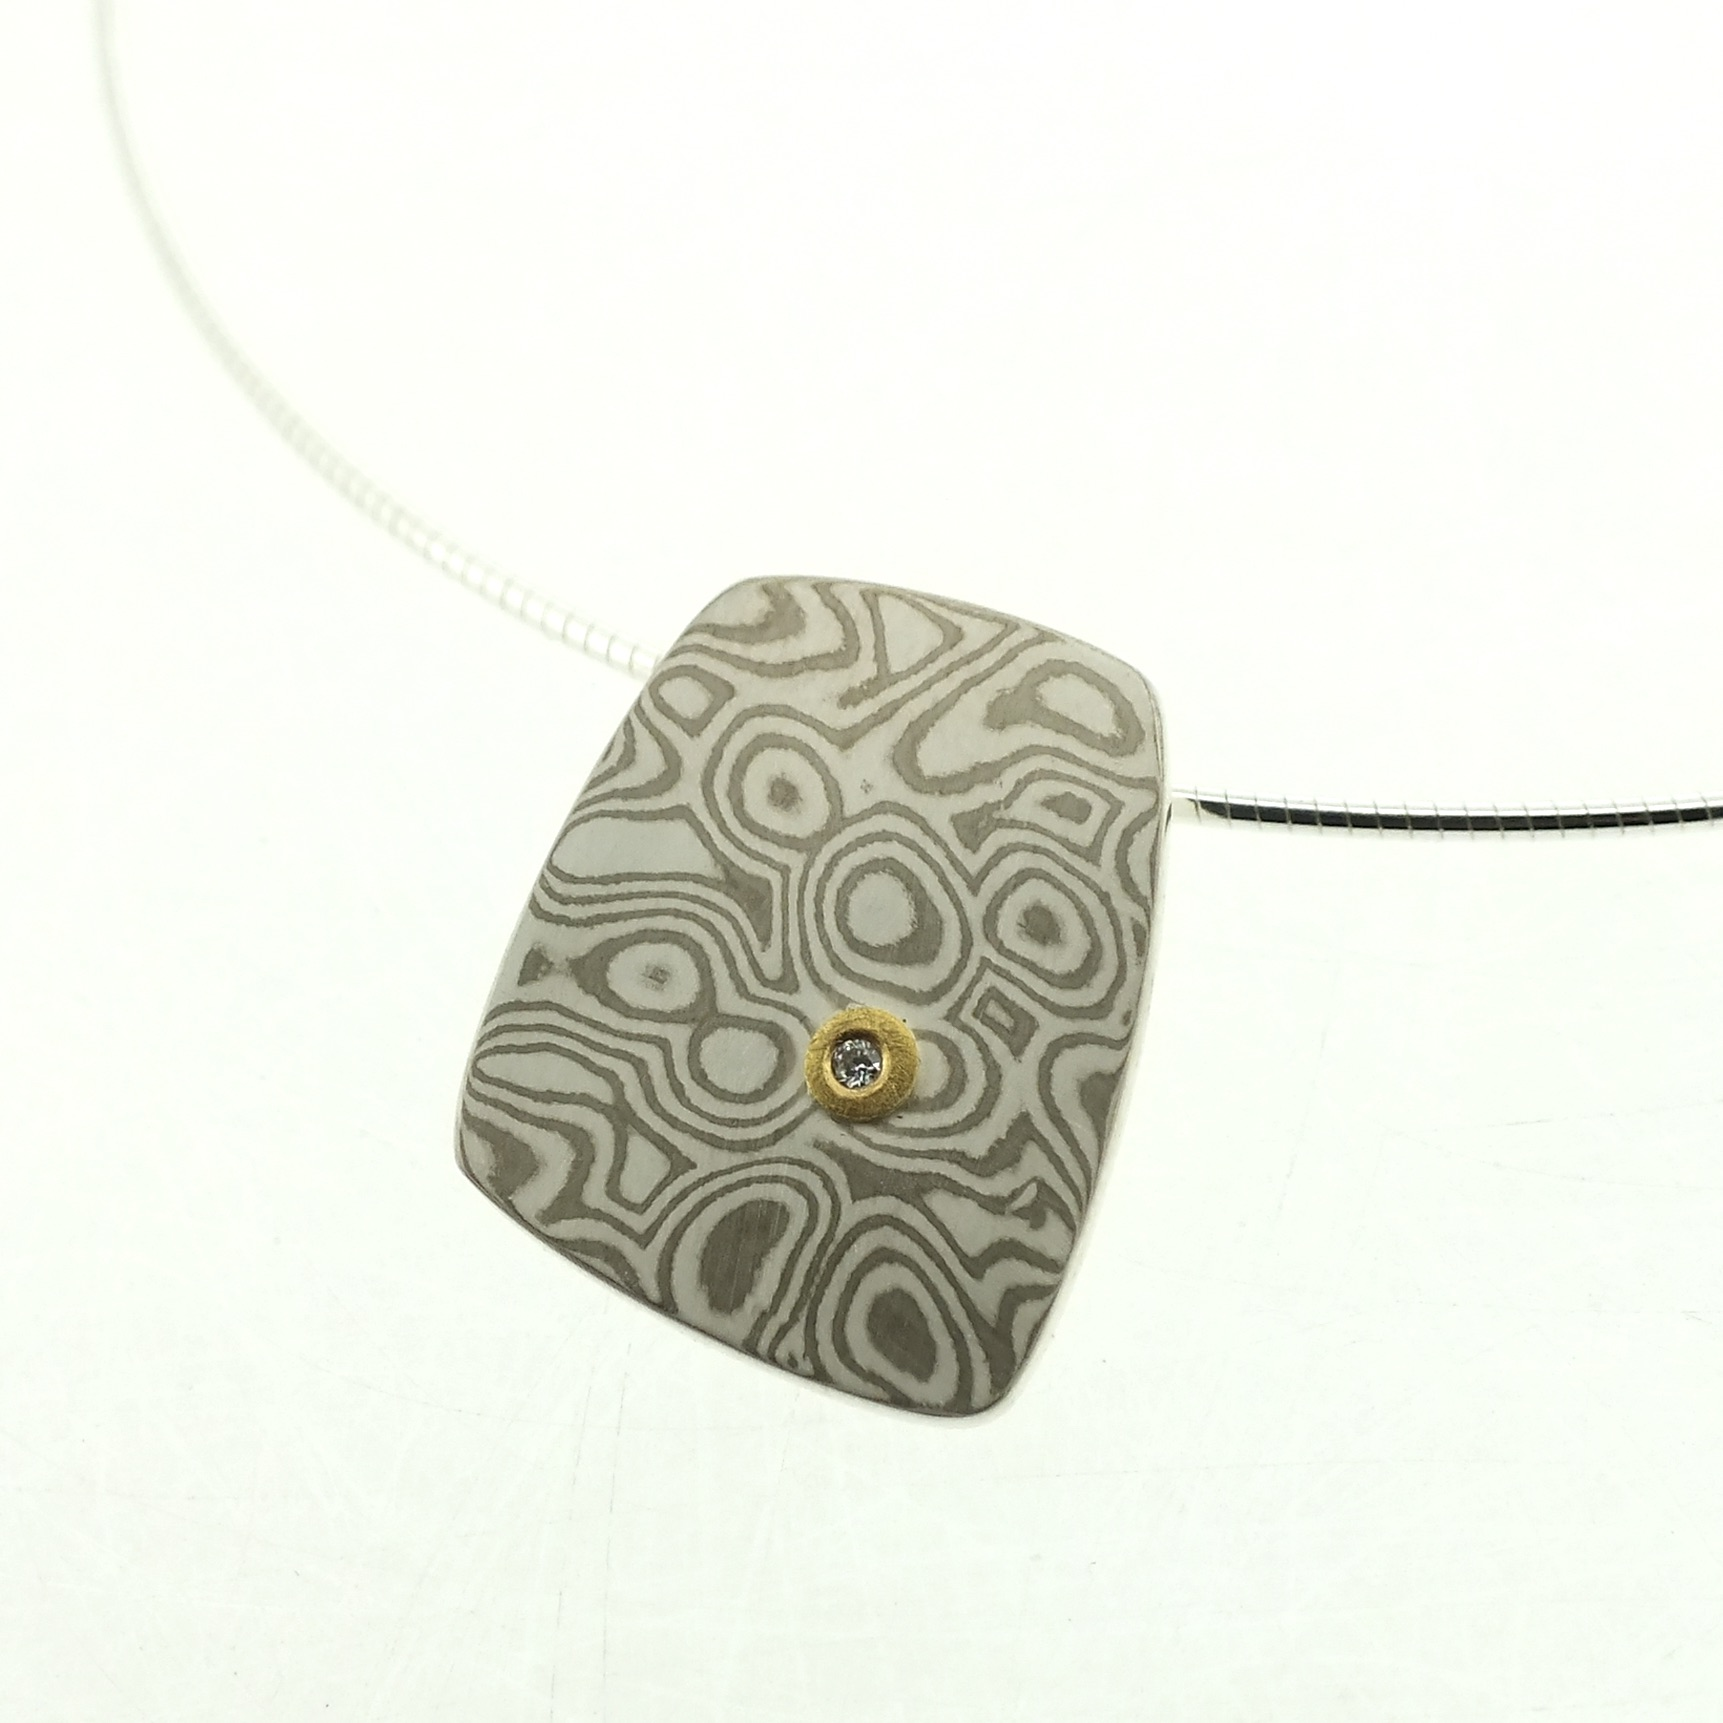 18k white gold and silver mokume gane large Fower Neukit pendant with 22k gold and diamond detail